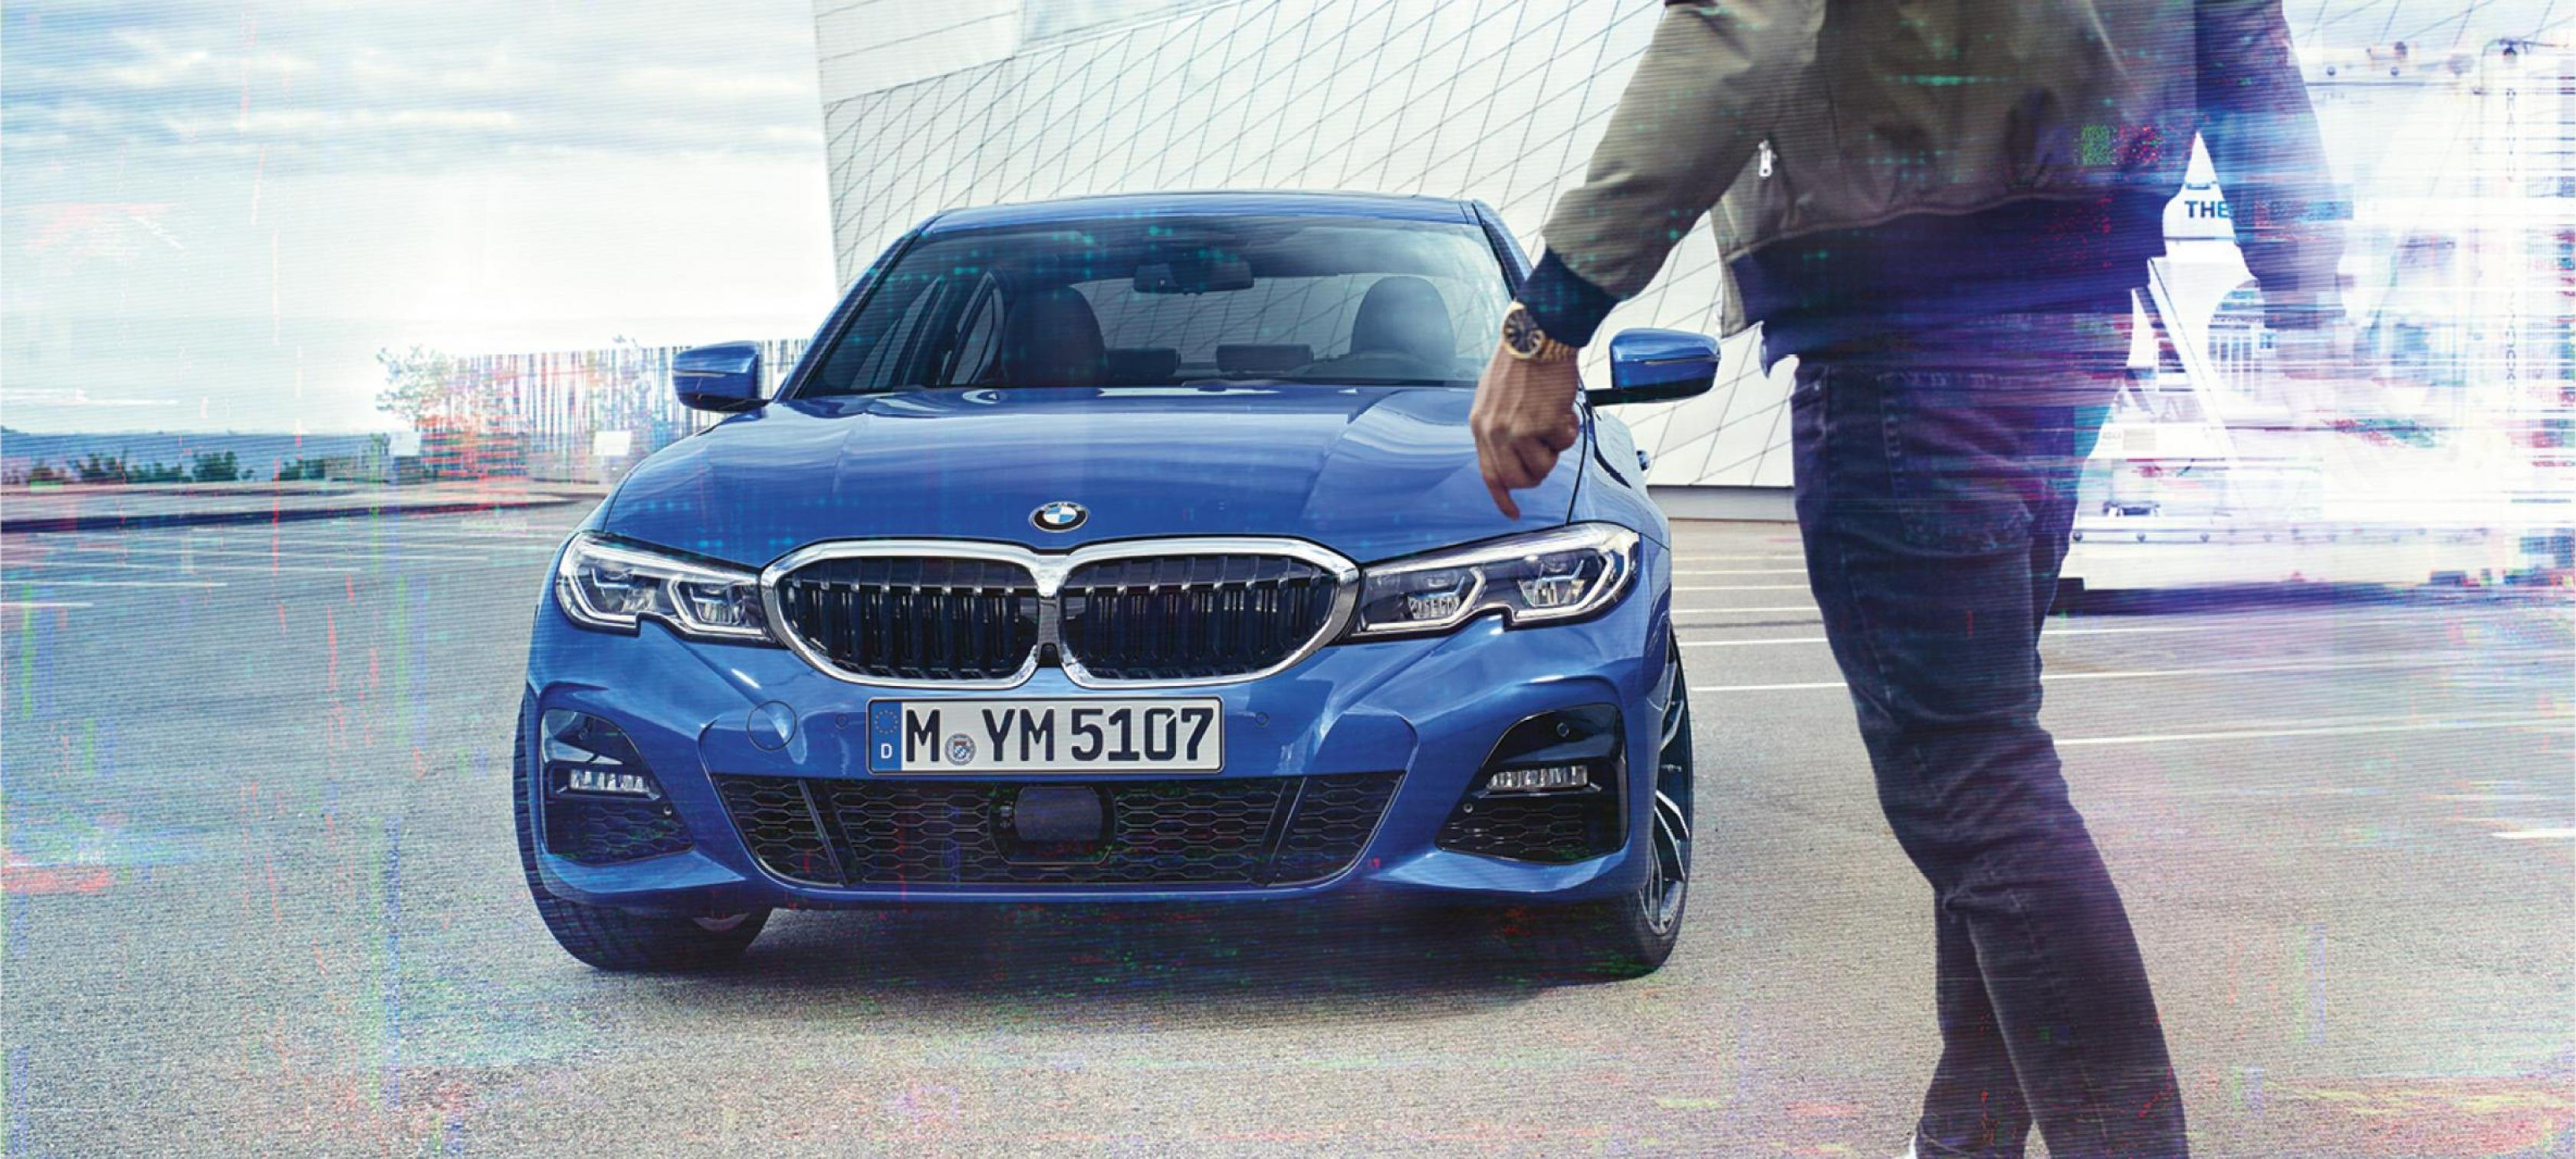 https://www.bmw.be/nl/topics/nu-of-nu-deals.html?tl=grp-wedp-smdl-tac-mn-.-.-.-.-.-.